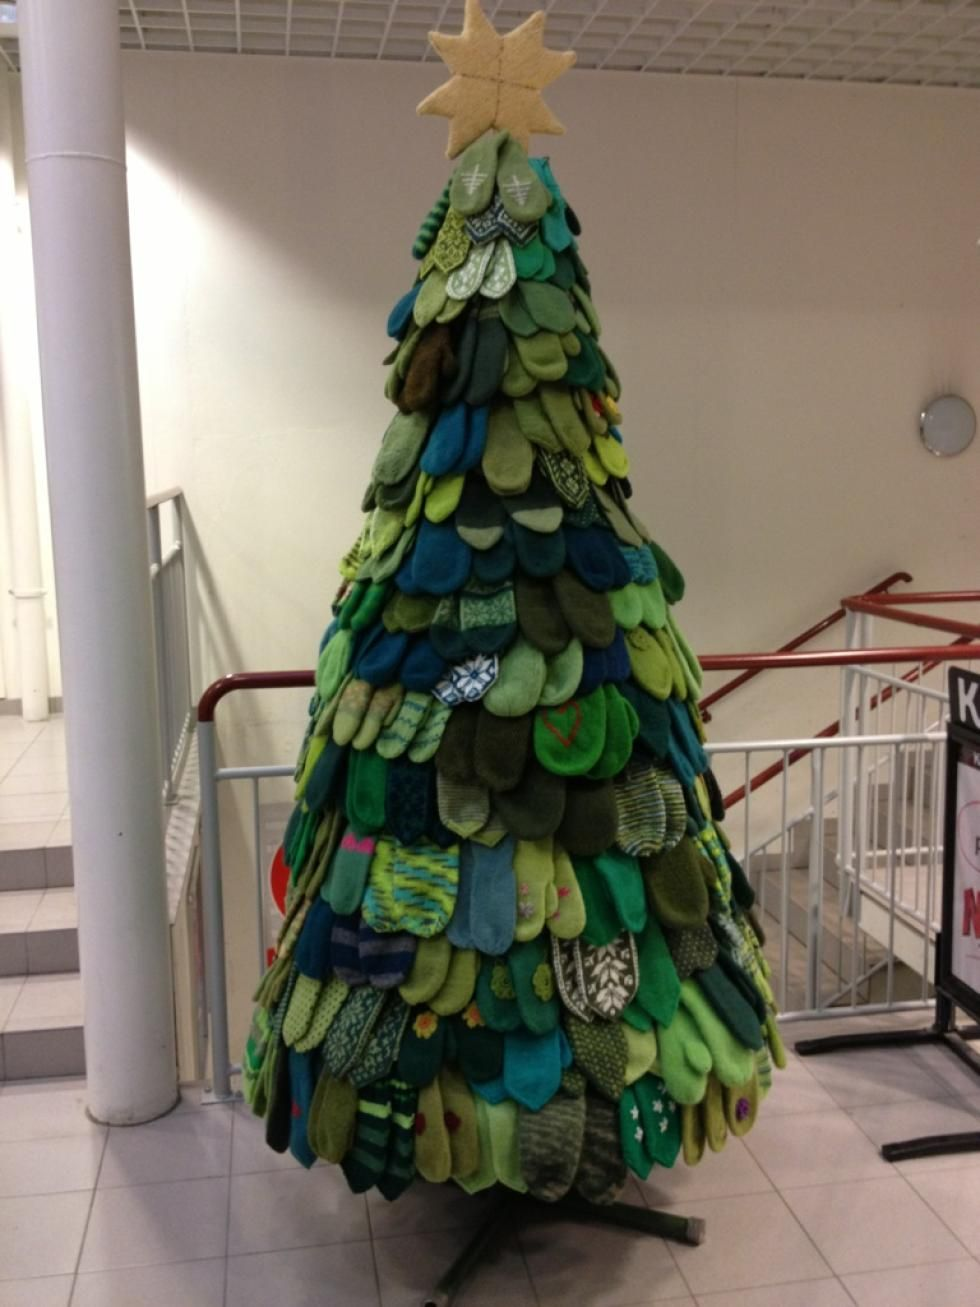 Next year I'll knit my self a mitten tree too!